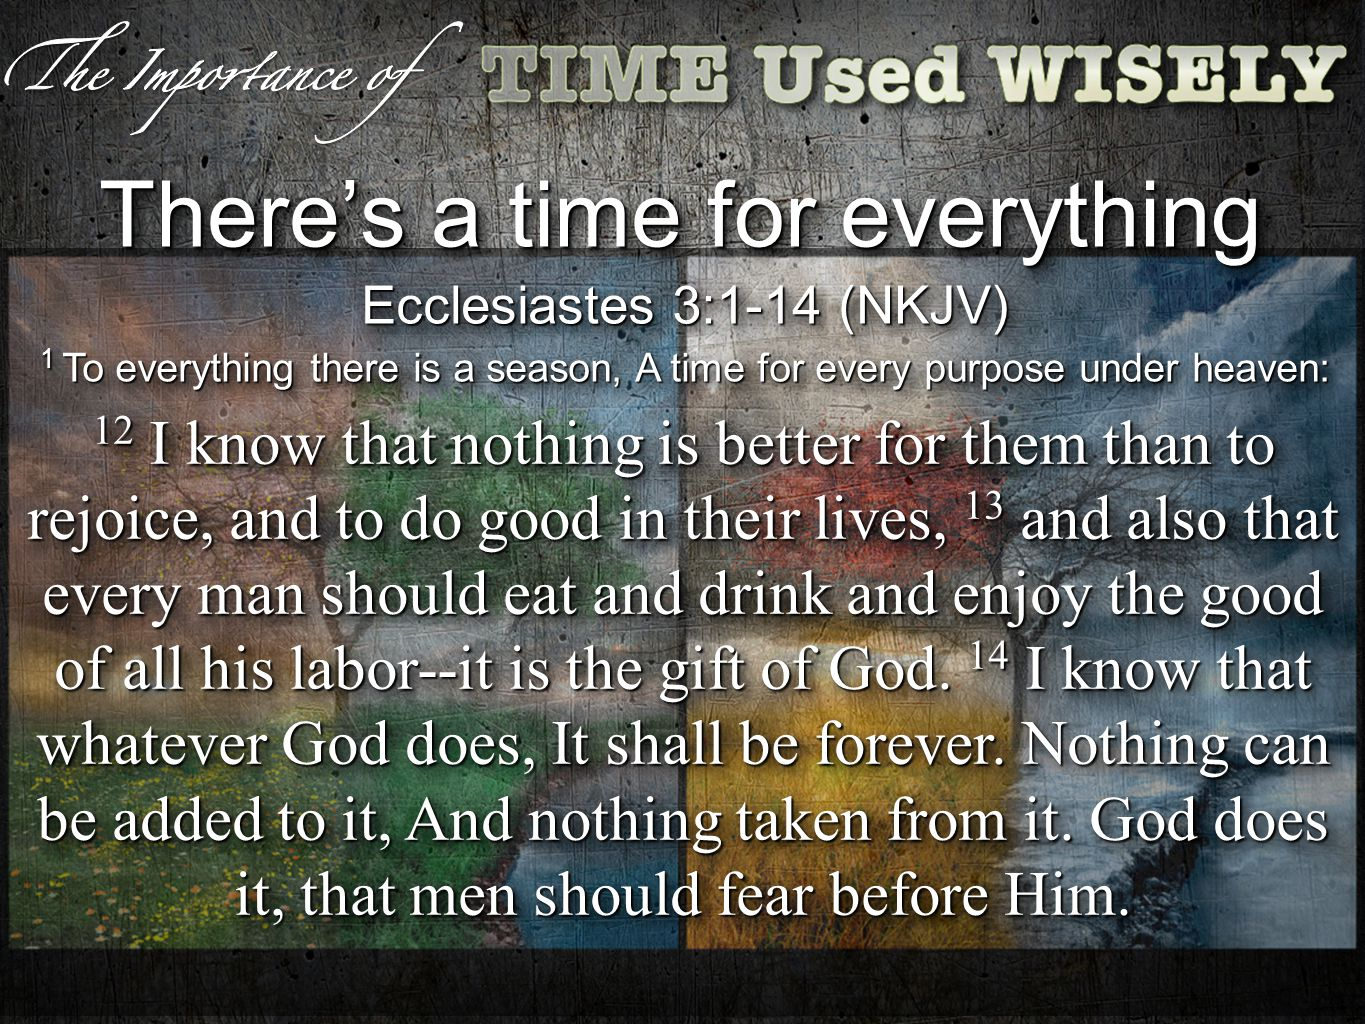 Theres a time for everything Ecclesiastes 3:1-14 (NKJV) 1 To everything there is a season, A time for every purpose under heaven: Ecclesiastes 3:1-14 (NKJV) 1 To everything there is a season, A time for every purpose under heaven: 12 I know that nothing is better for them than to rejoice, and to do good in their lives, 13 and also that every man should eat and drink and enjoy the good of all his labor--it is the gift of God.